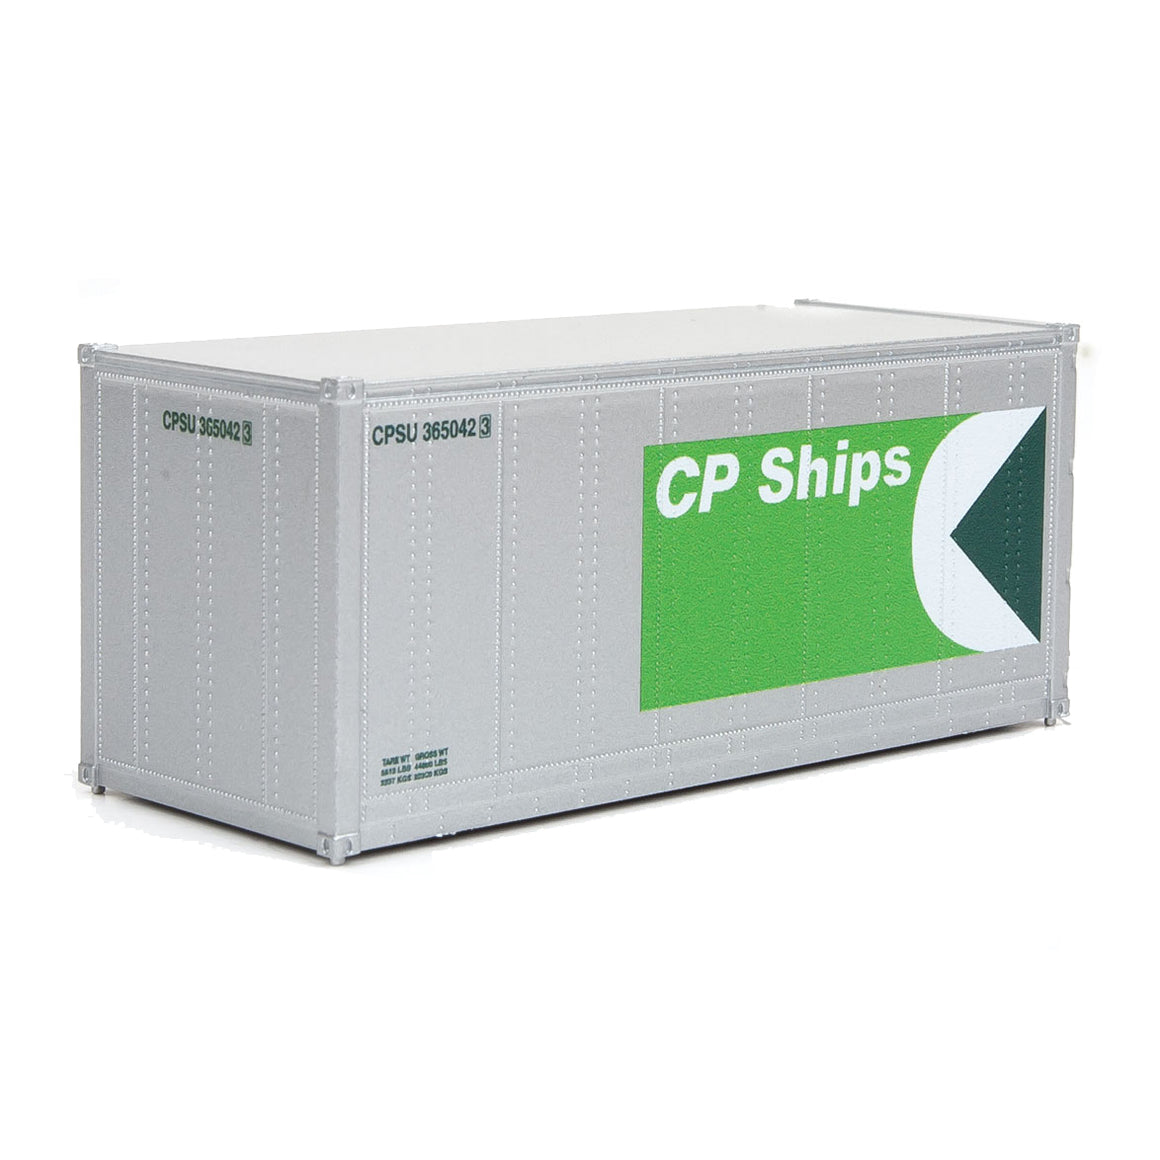 HO Scale: 20' Smooth-side Container - CP Ships